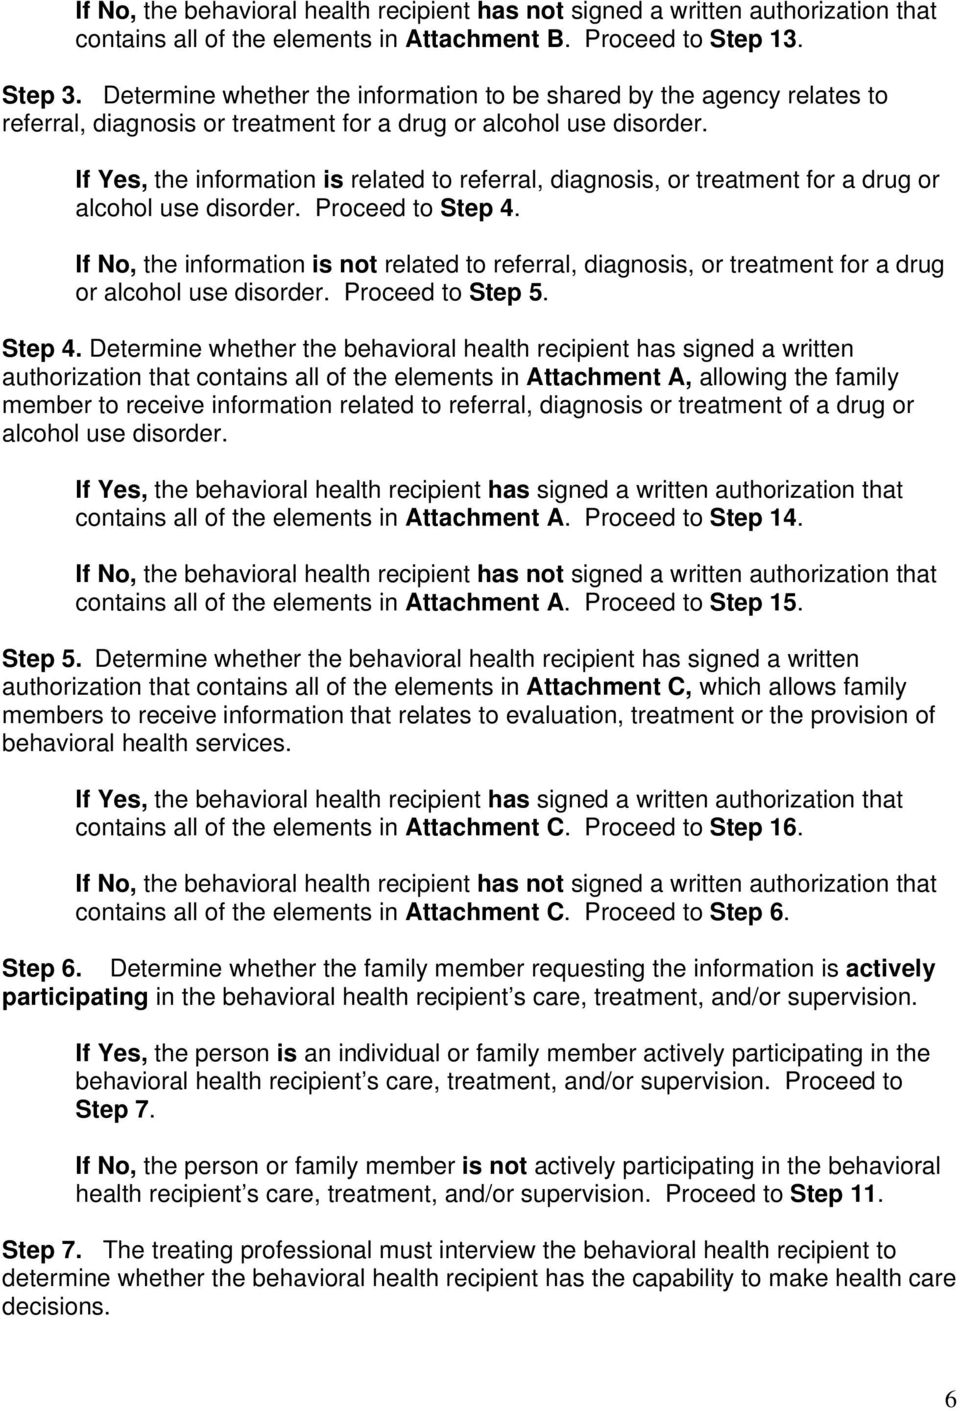 If Yes, the information is related to referral, diagnosis, or treatment for a drug or alcohol use disorder. Proceed to Step 4.